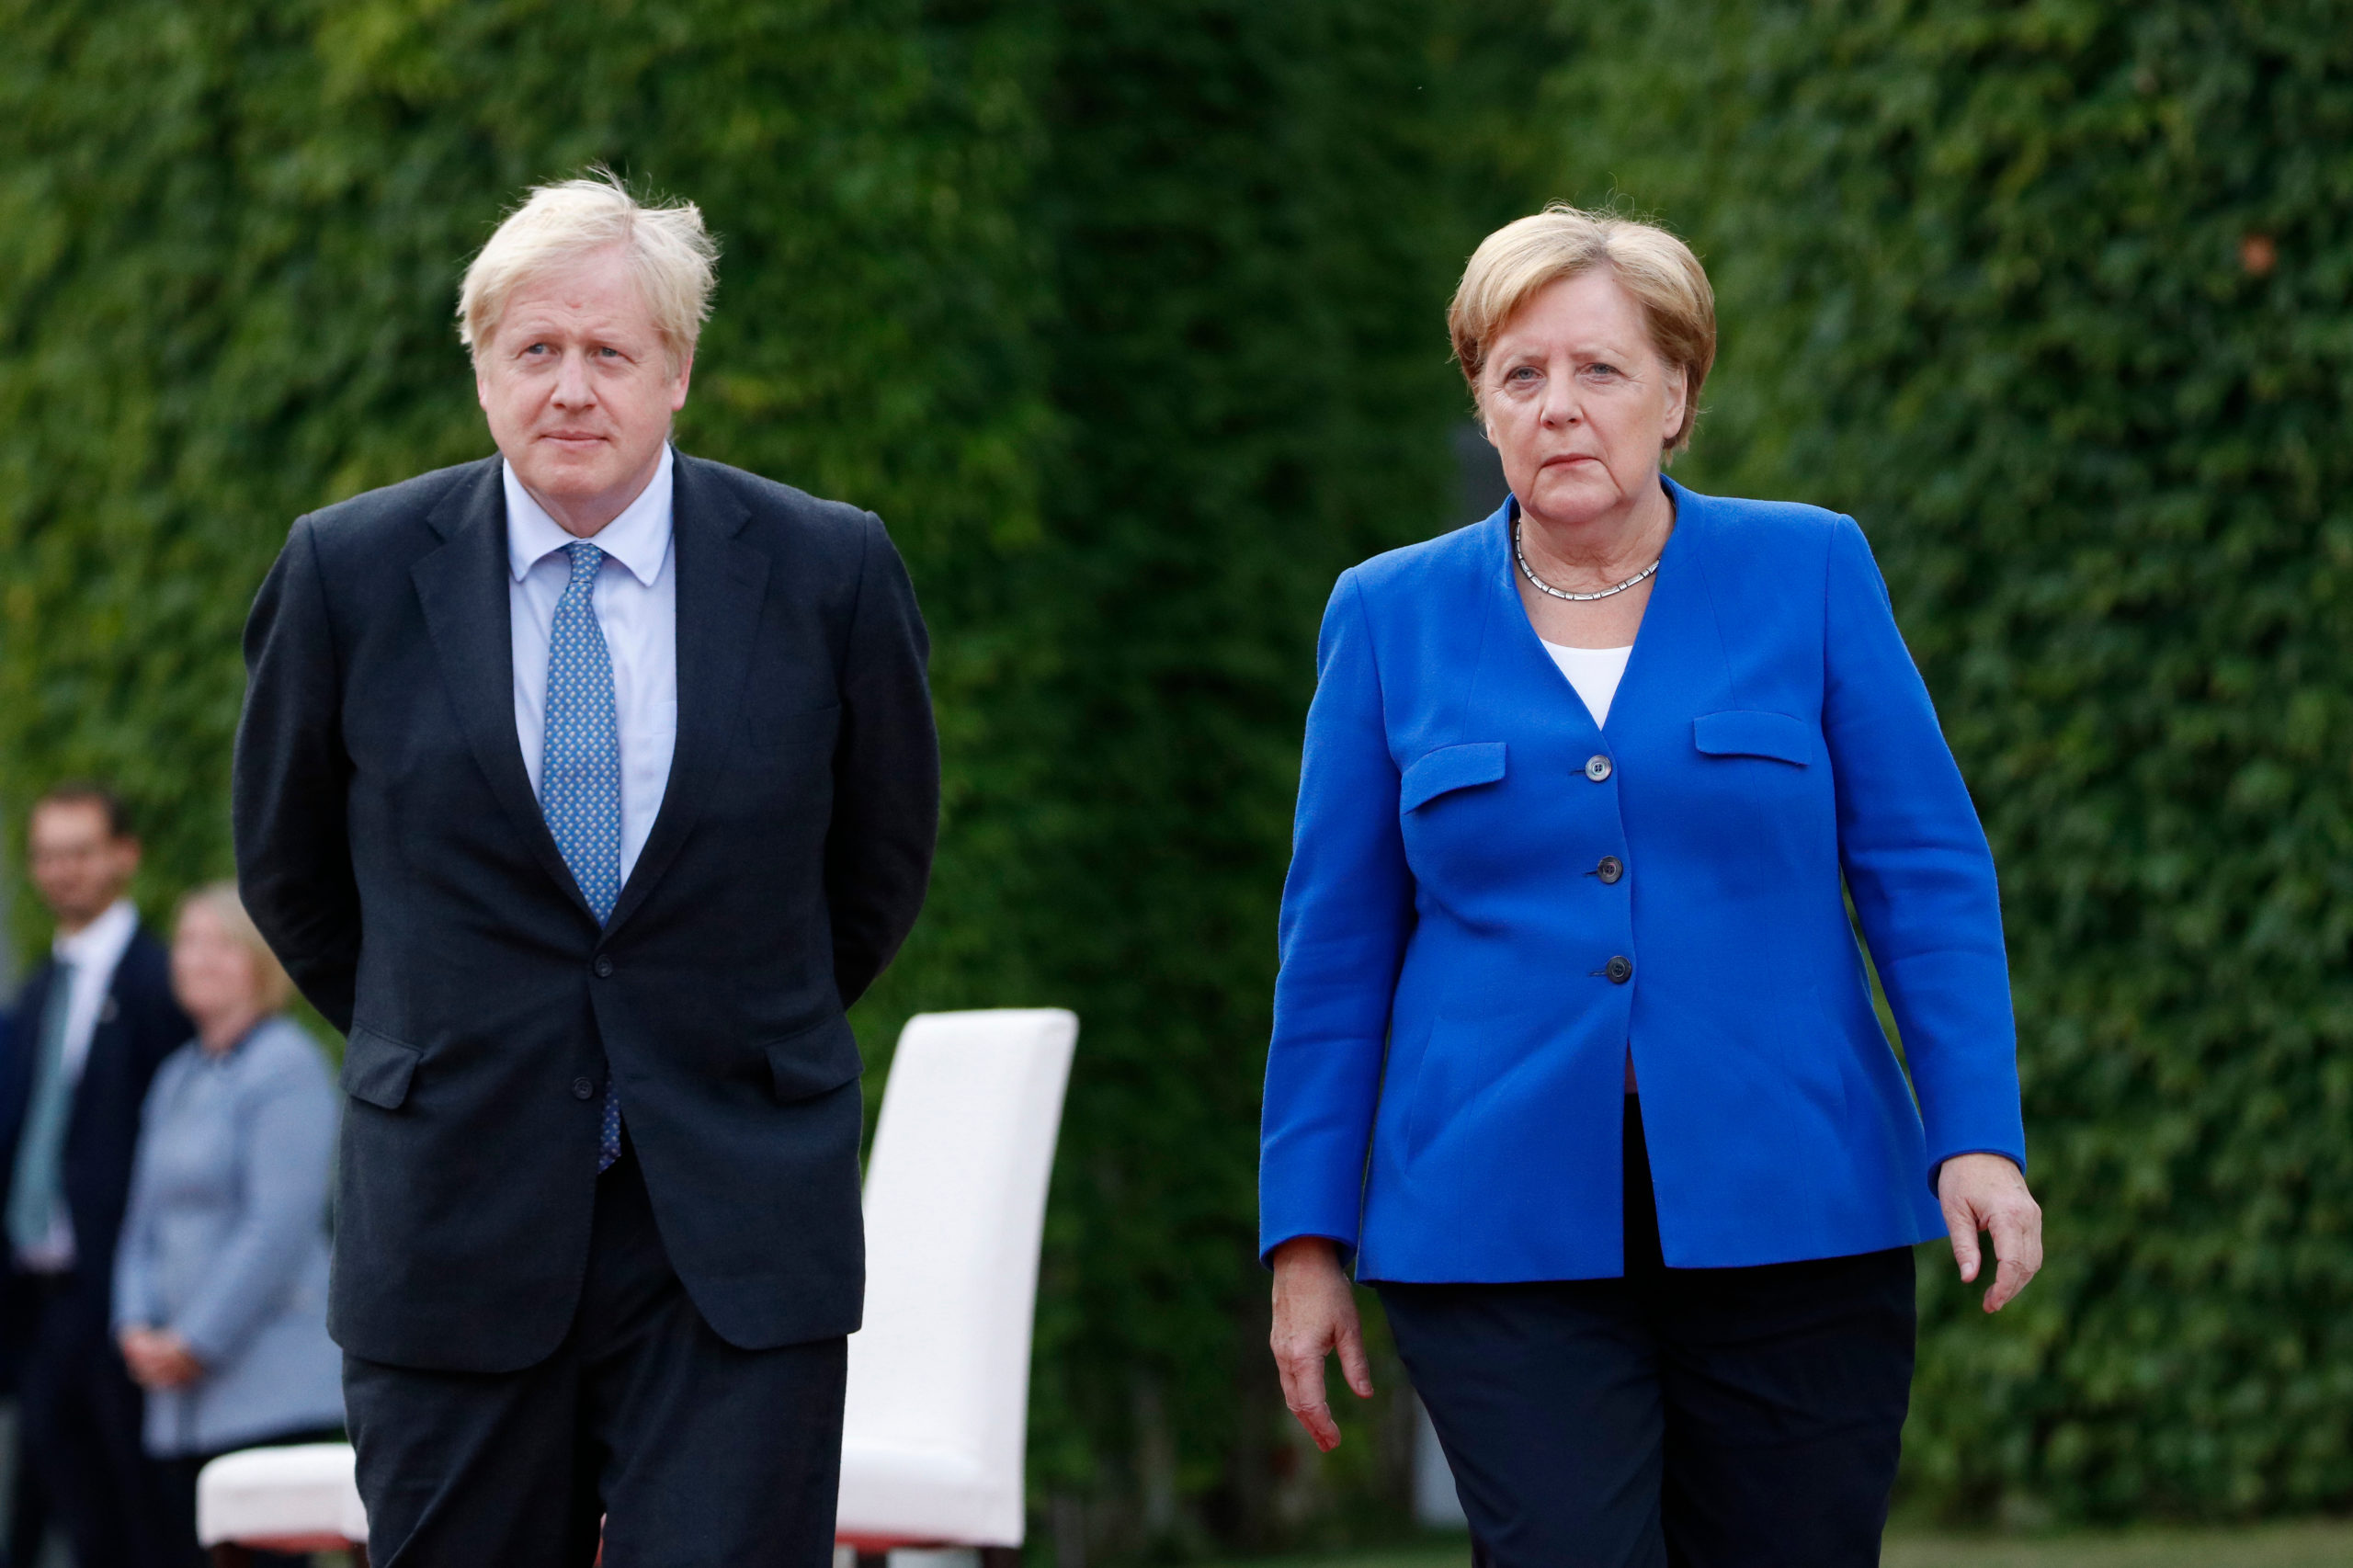 Negotiating new trade agreements is a priority for Boris Johnson's administration.